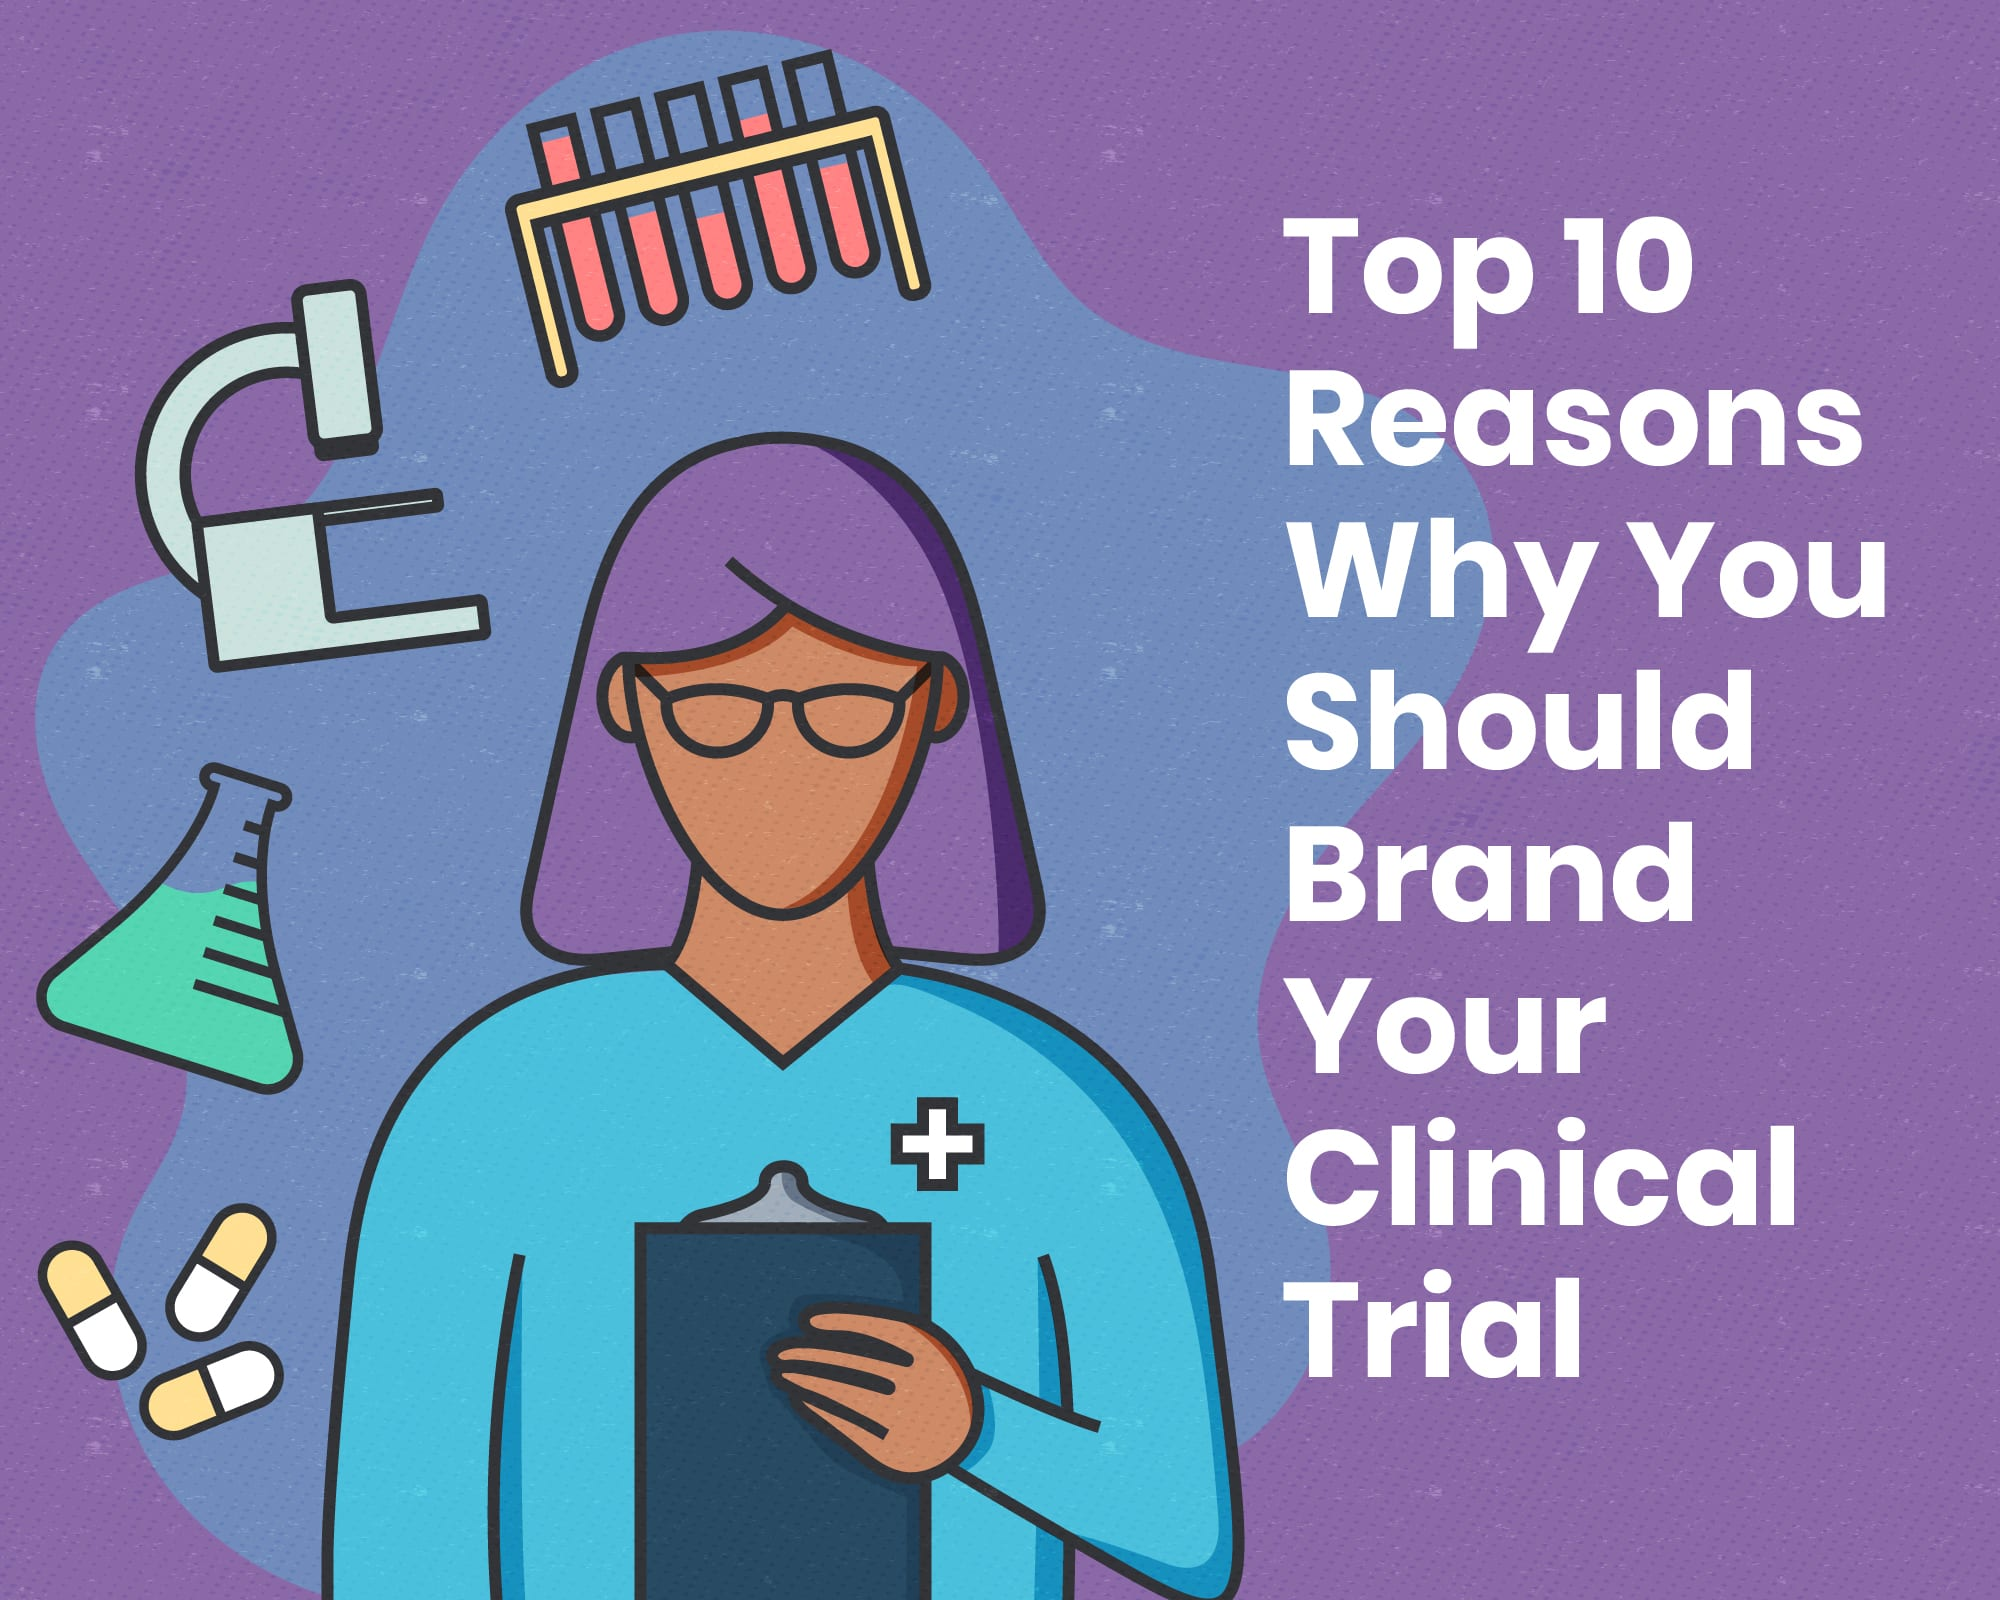 brand-your-clinical-trial